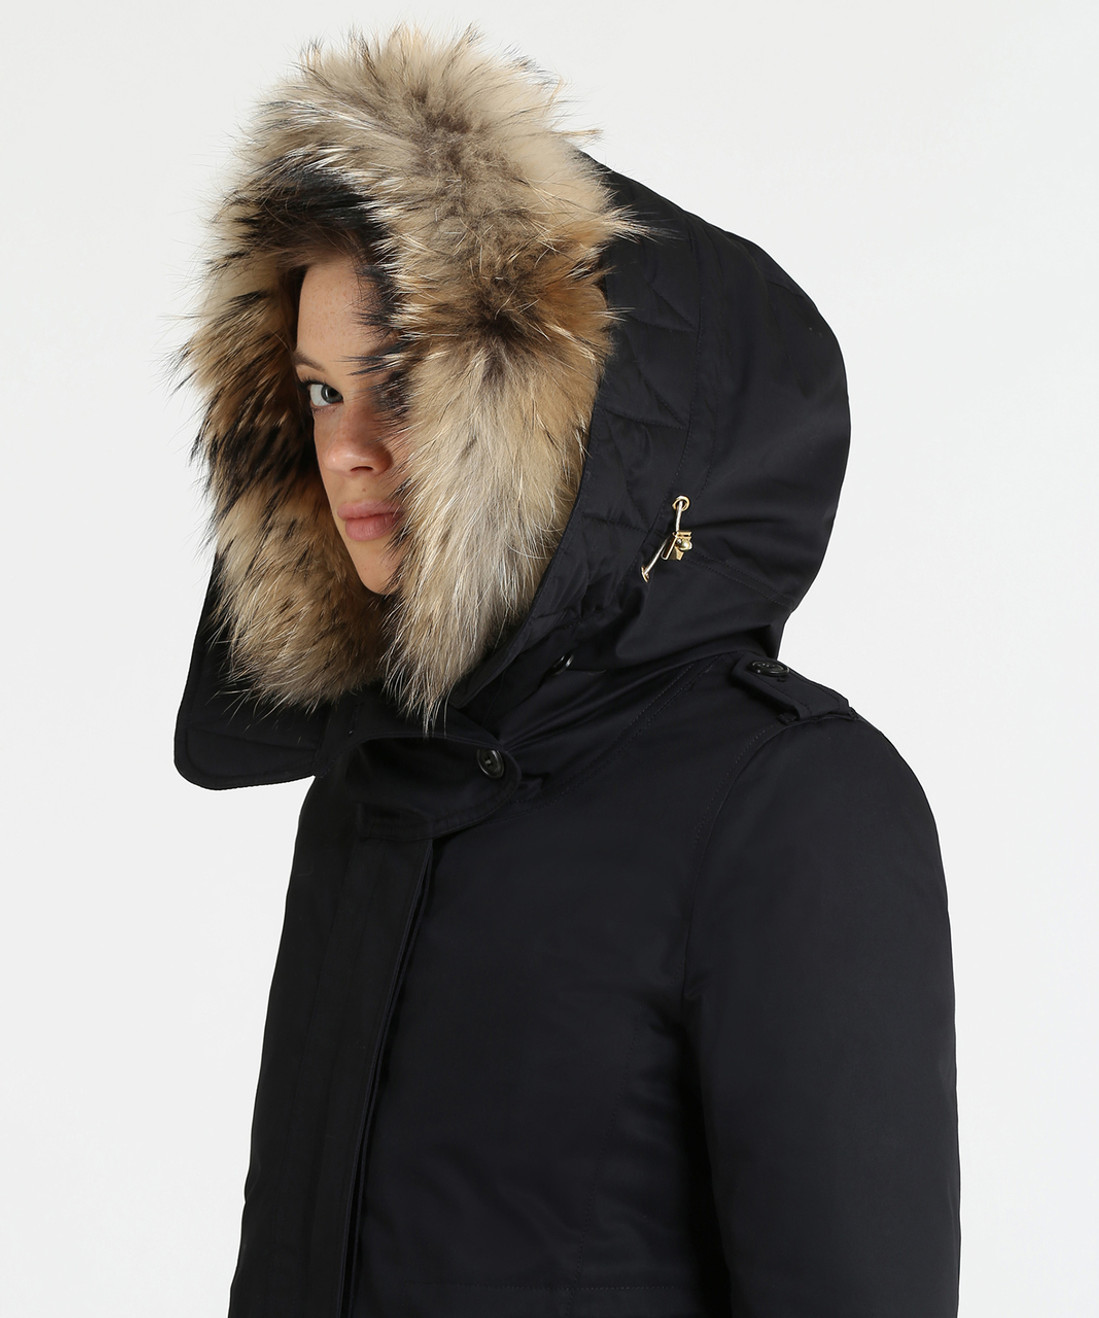 Women's 3 in 1 Scarlett Parka - John Rich & Bros.